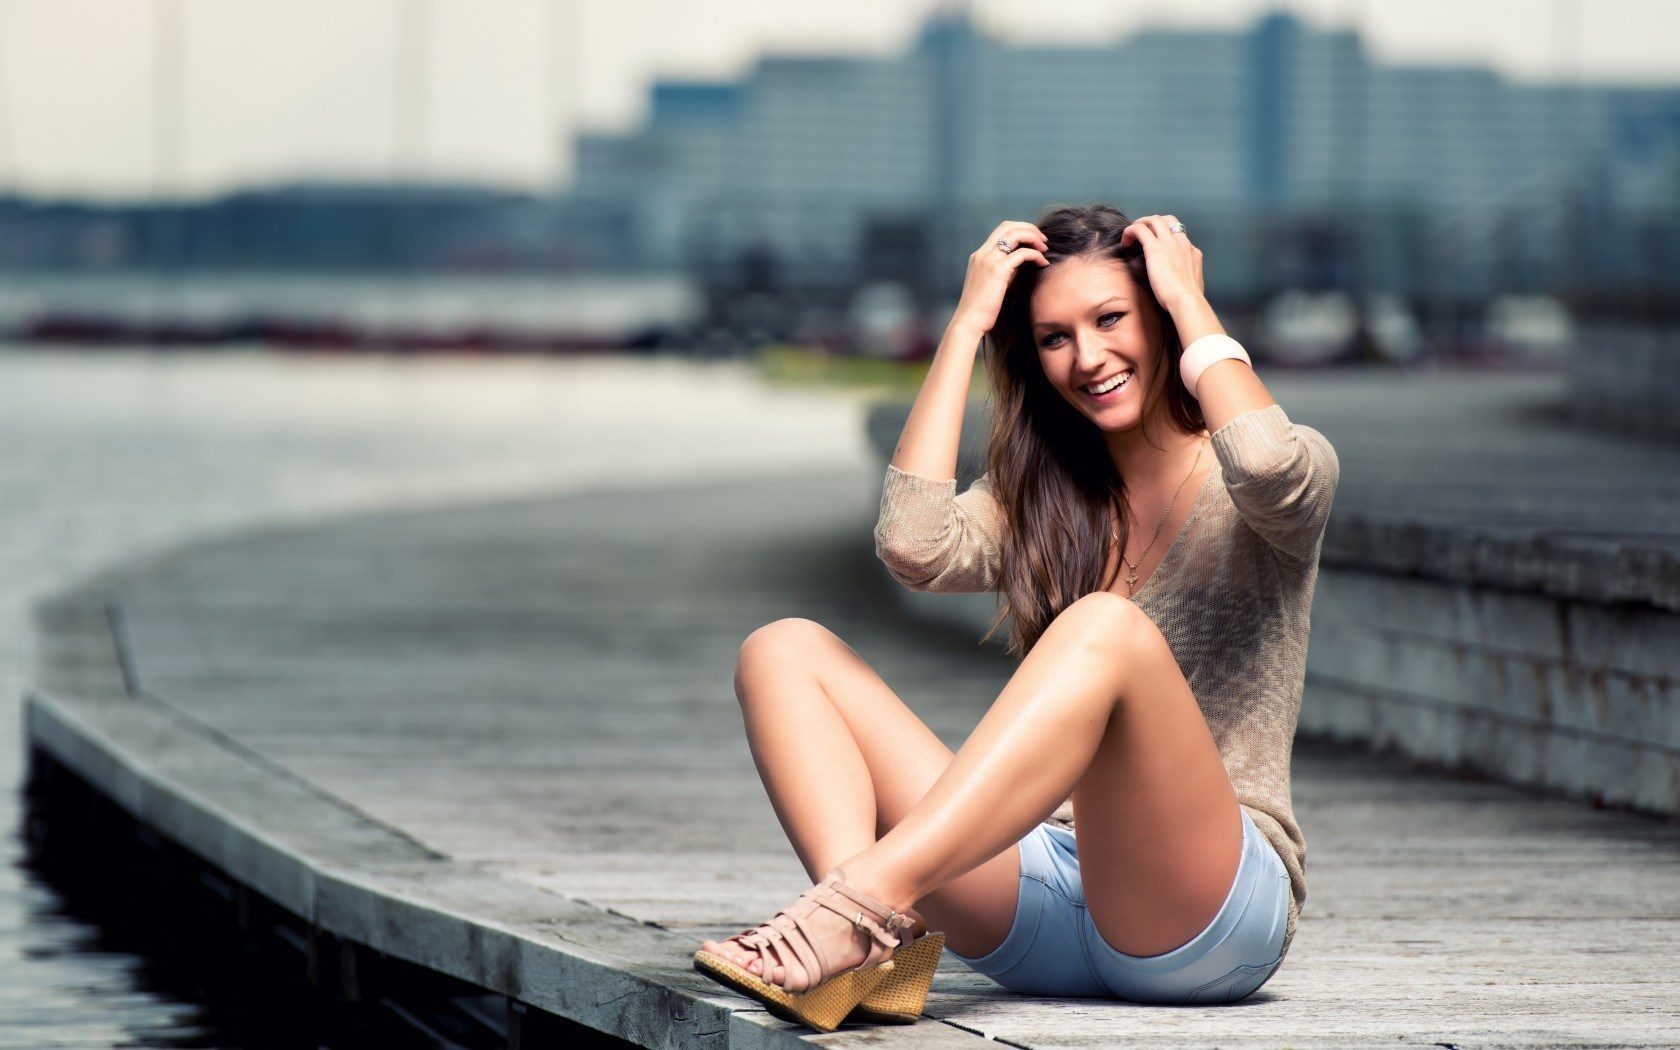 Girl Shorts Smile Happy Photo